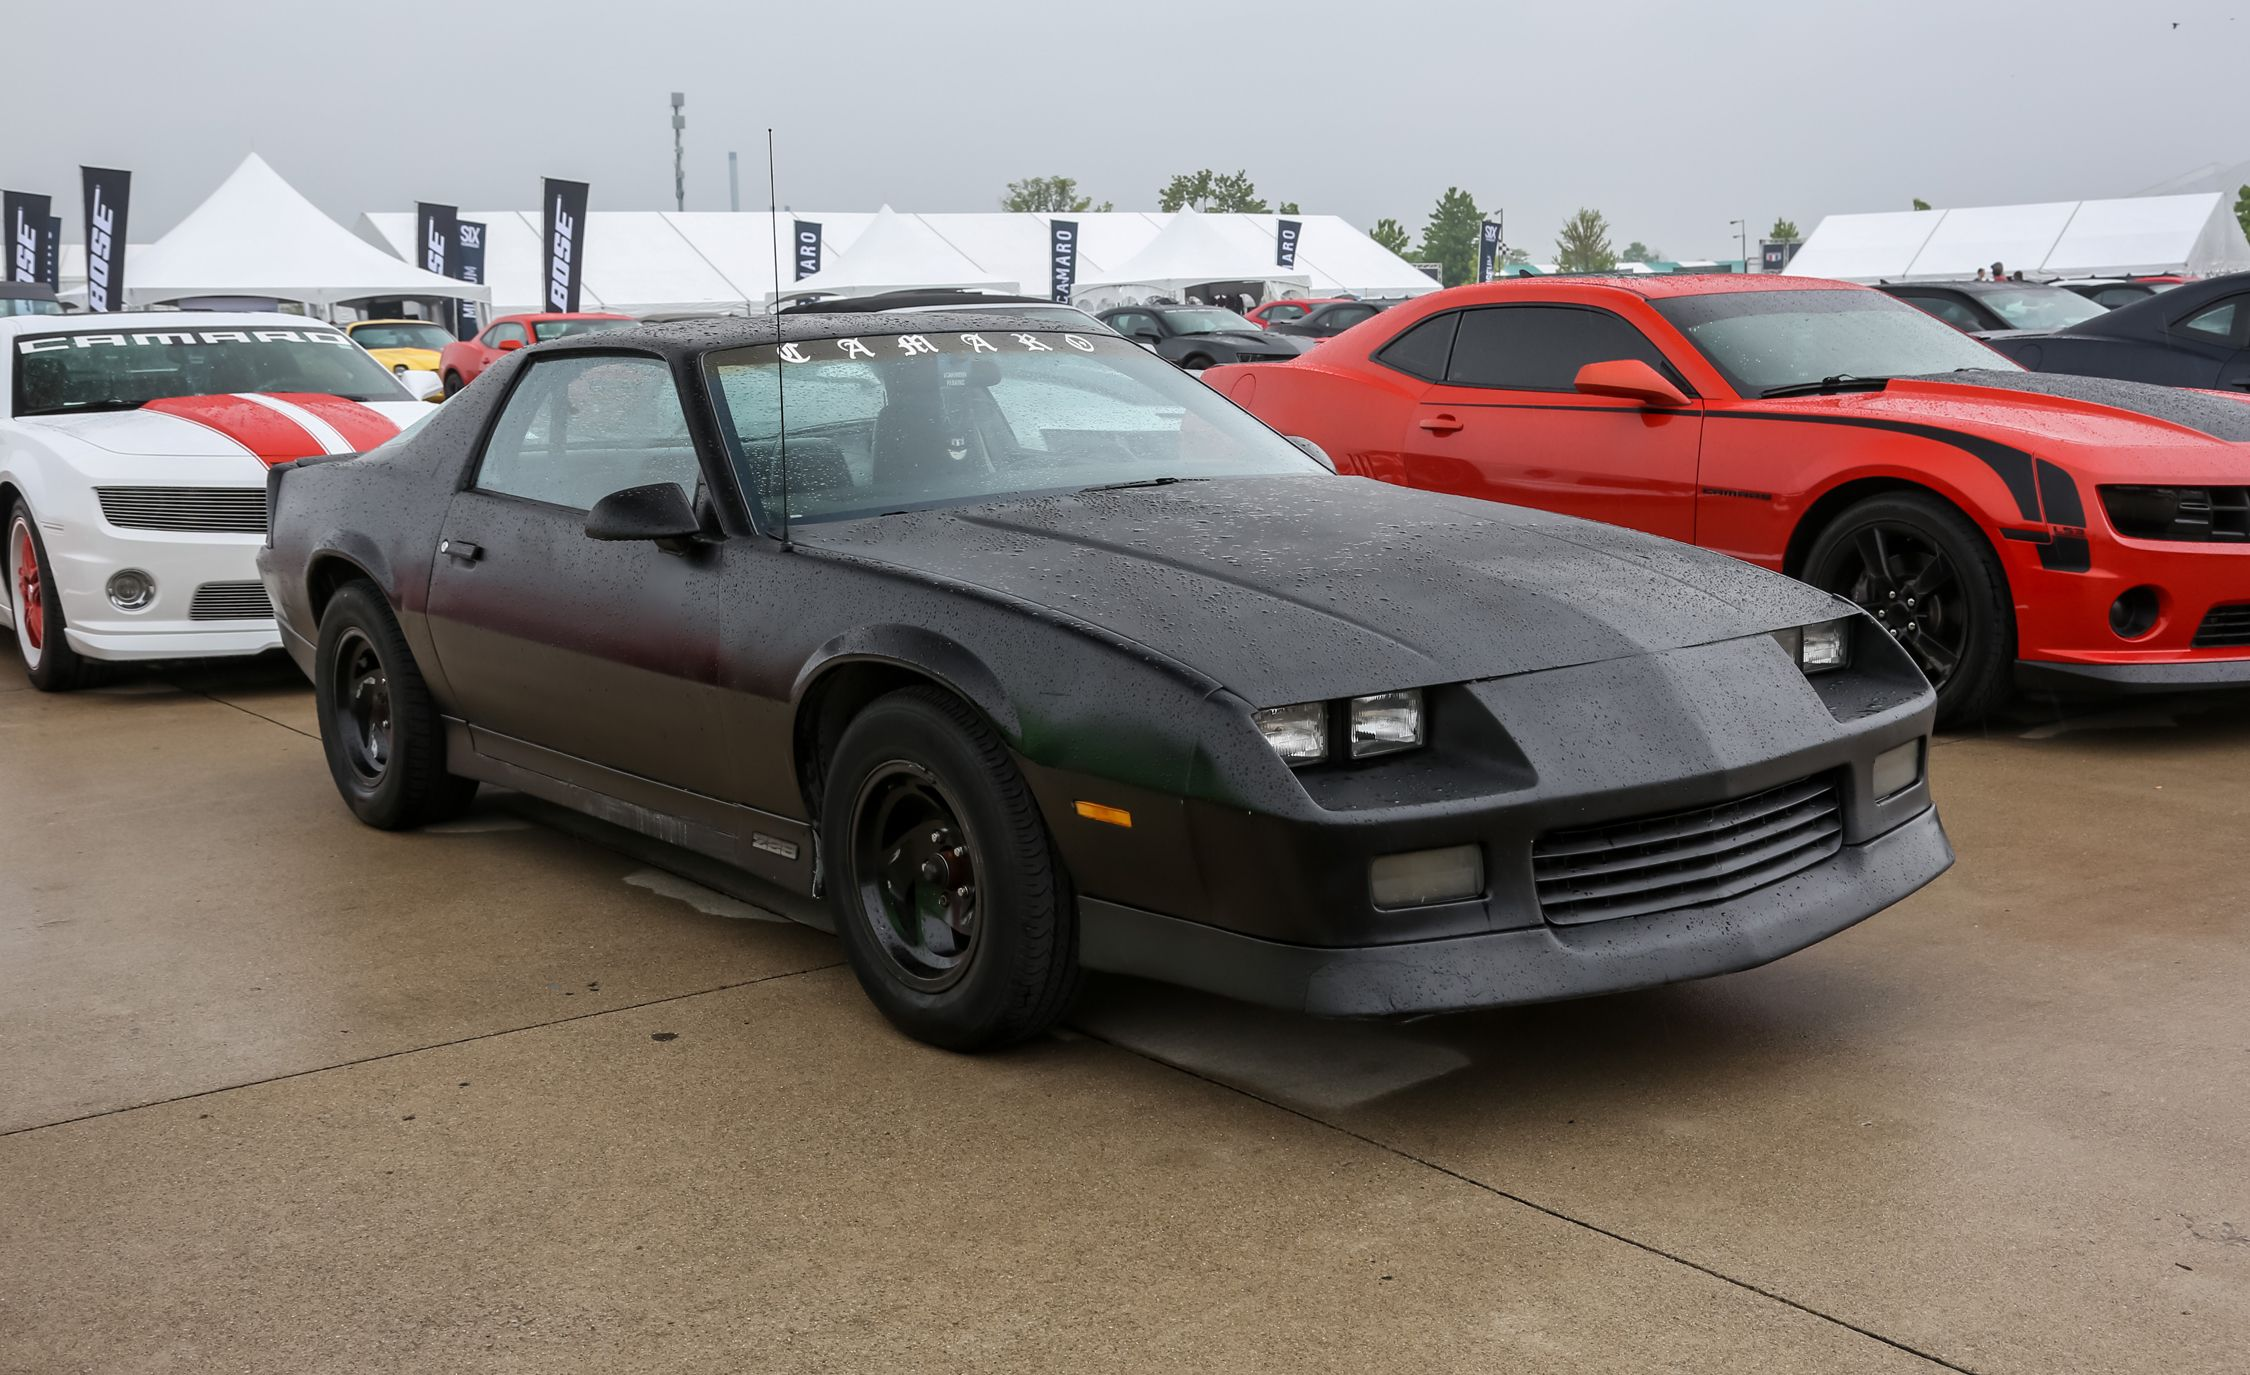 Camaro-tastic! The Hottest Privately Owned Camaros at the